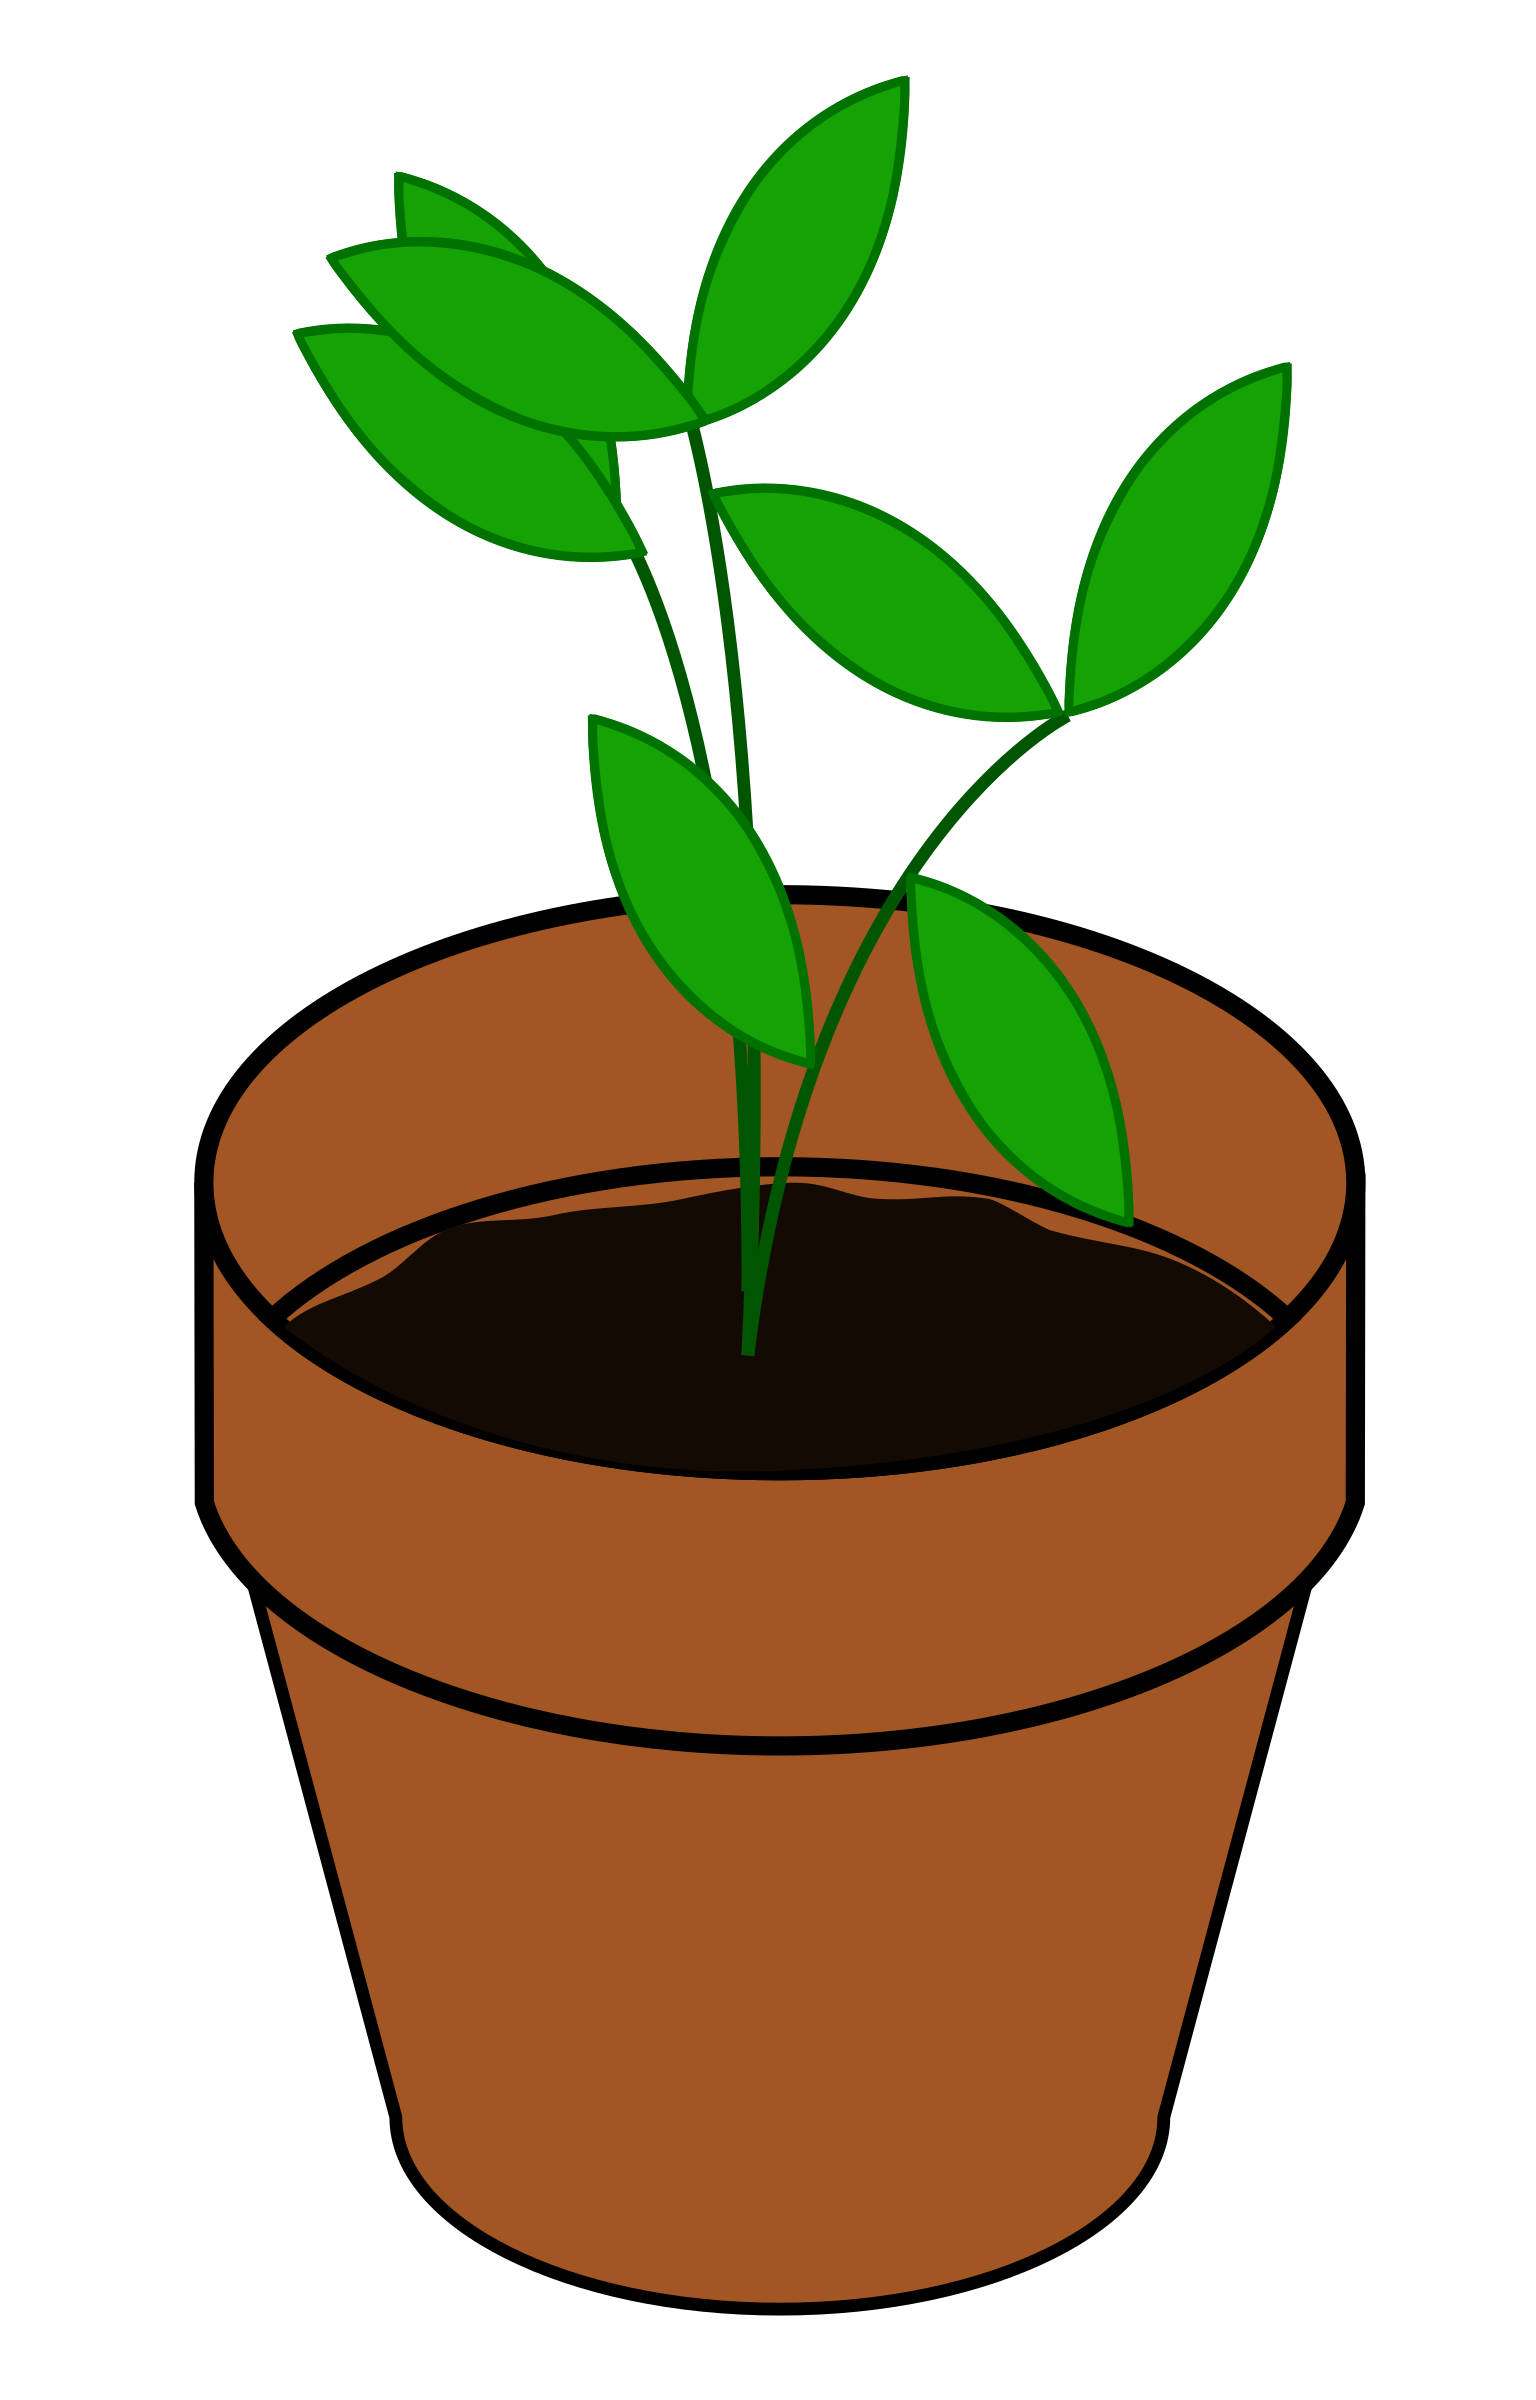 Cute plant clipart clipart images gallery for free download